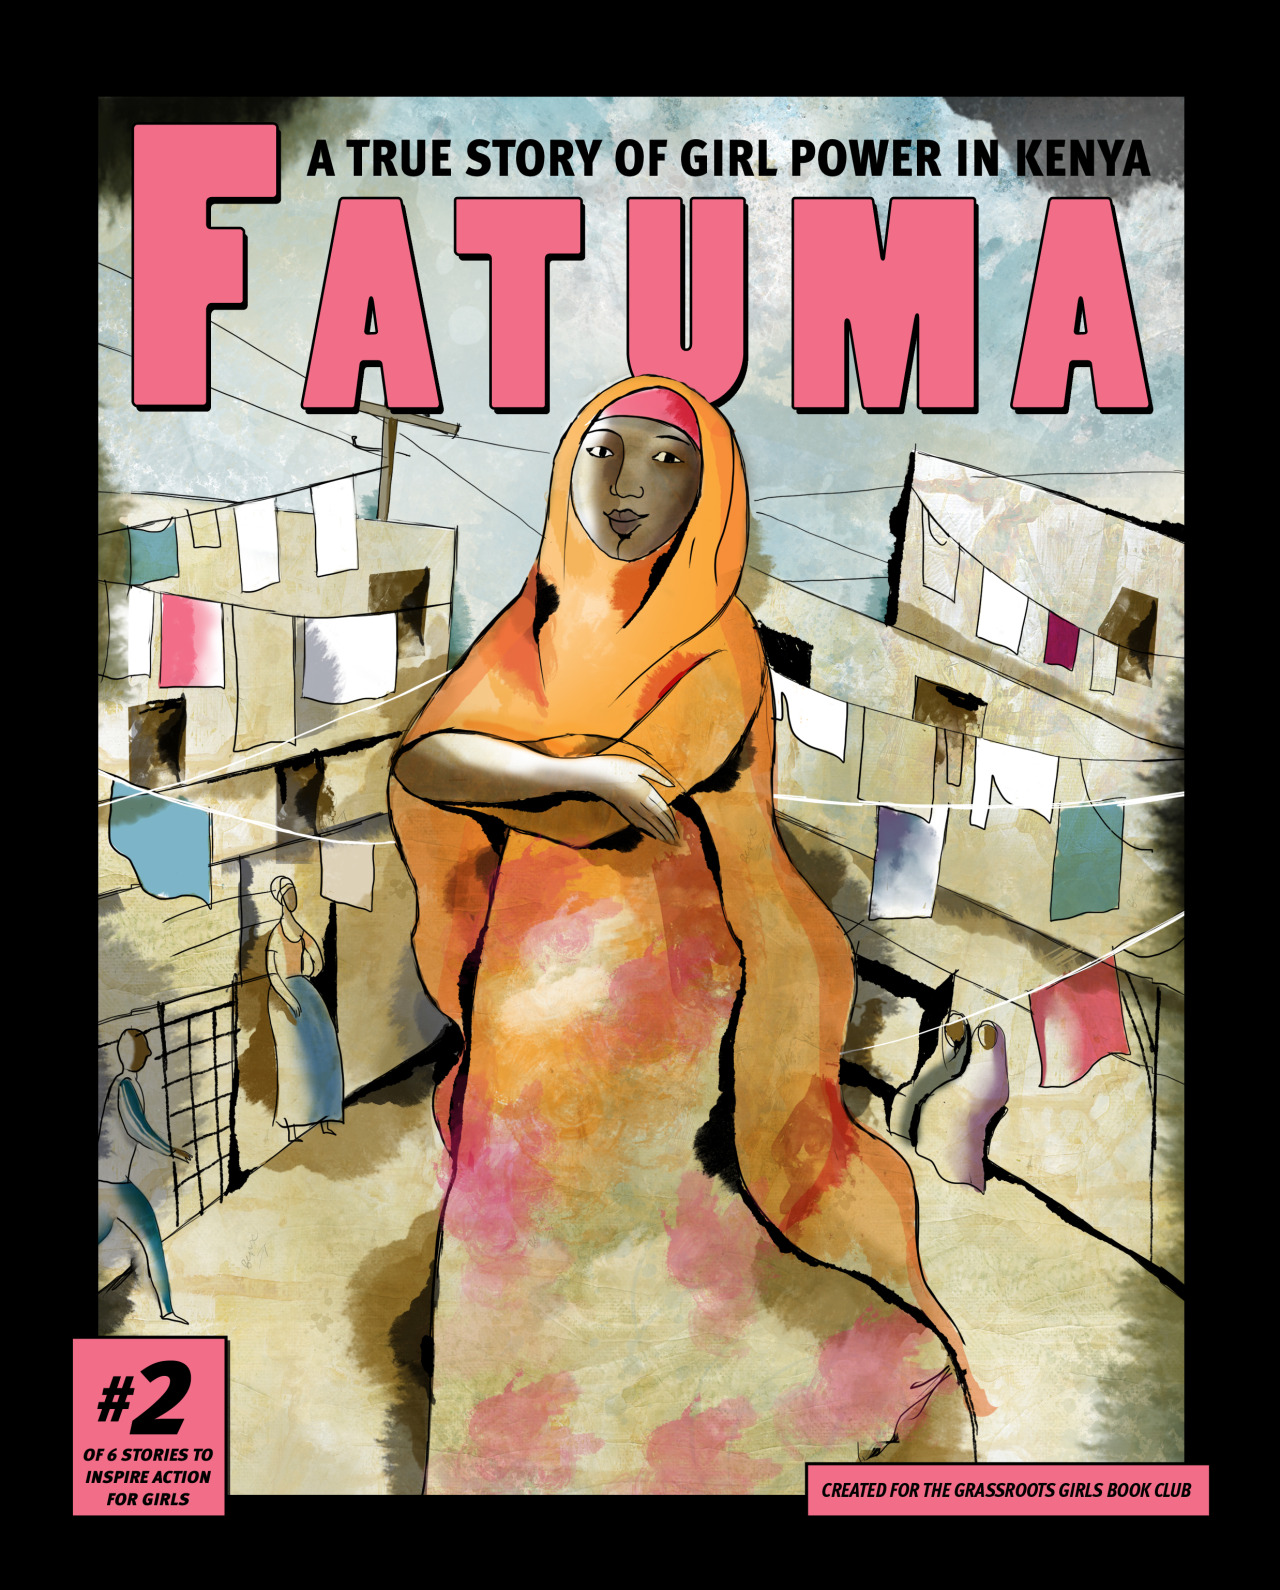 graphic novel cover with girl from Kenya